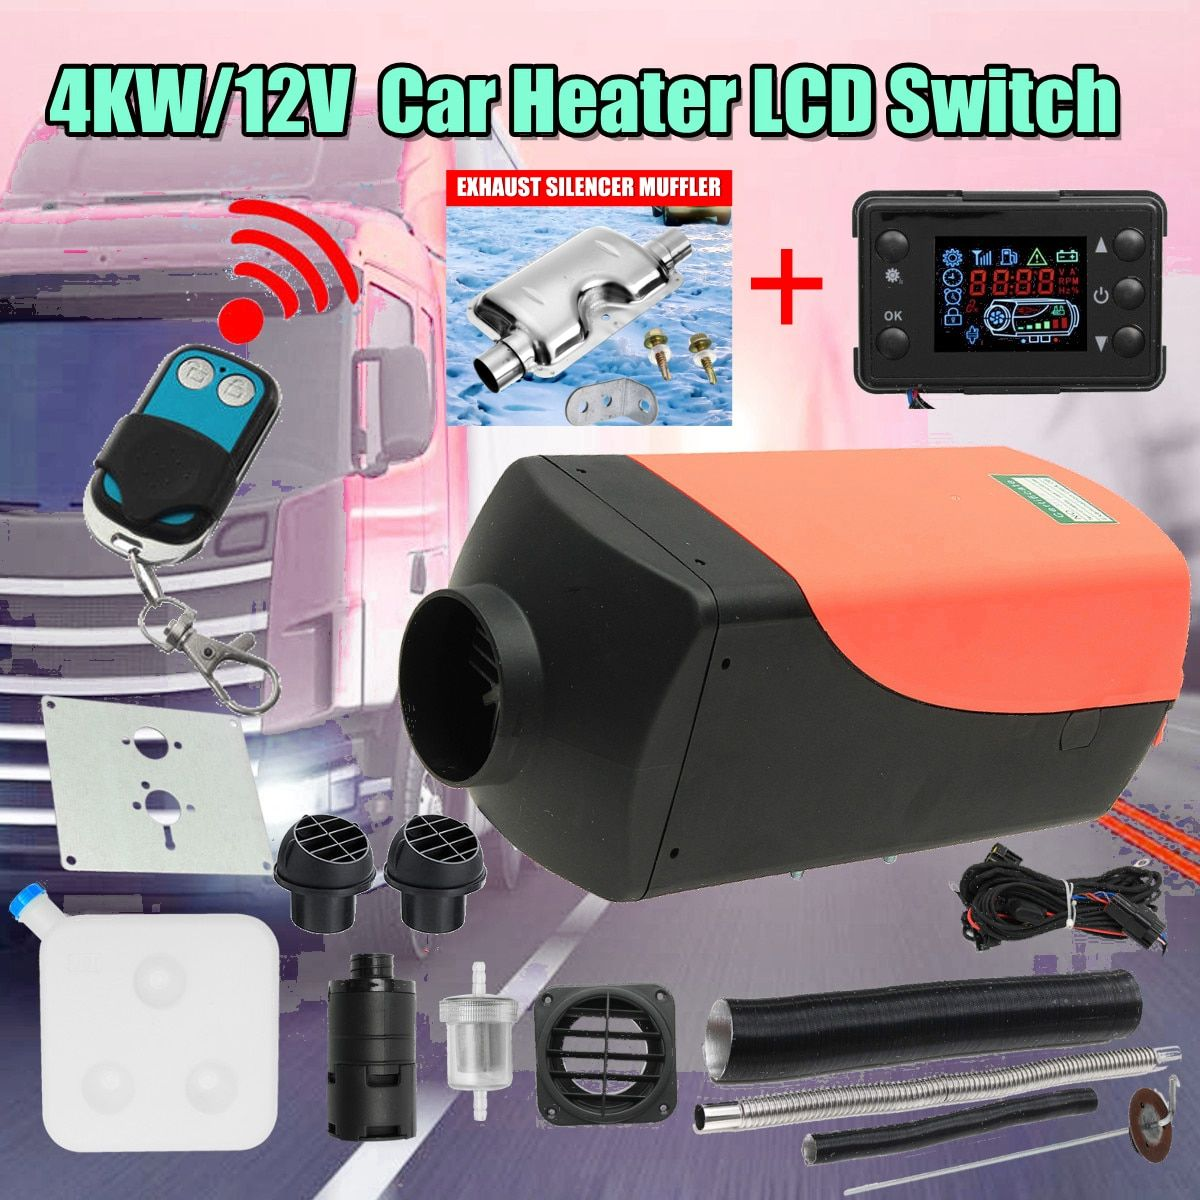 CAN Car Heater 4KW 12V Air Diesels Heater Parking Heater With Remote Heater LCD Monitor